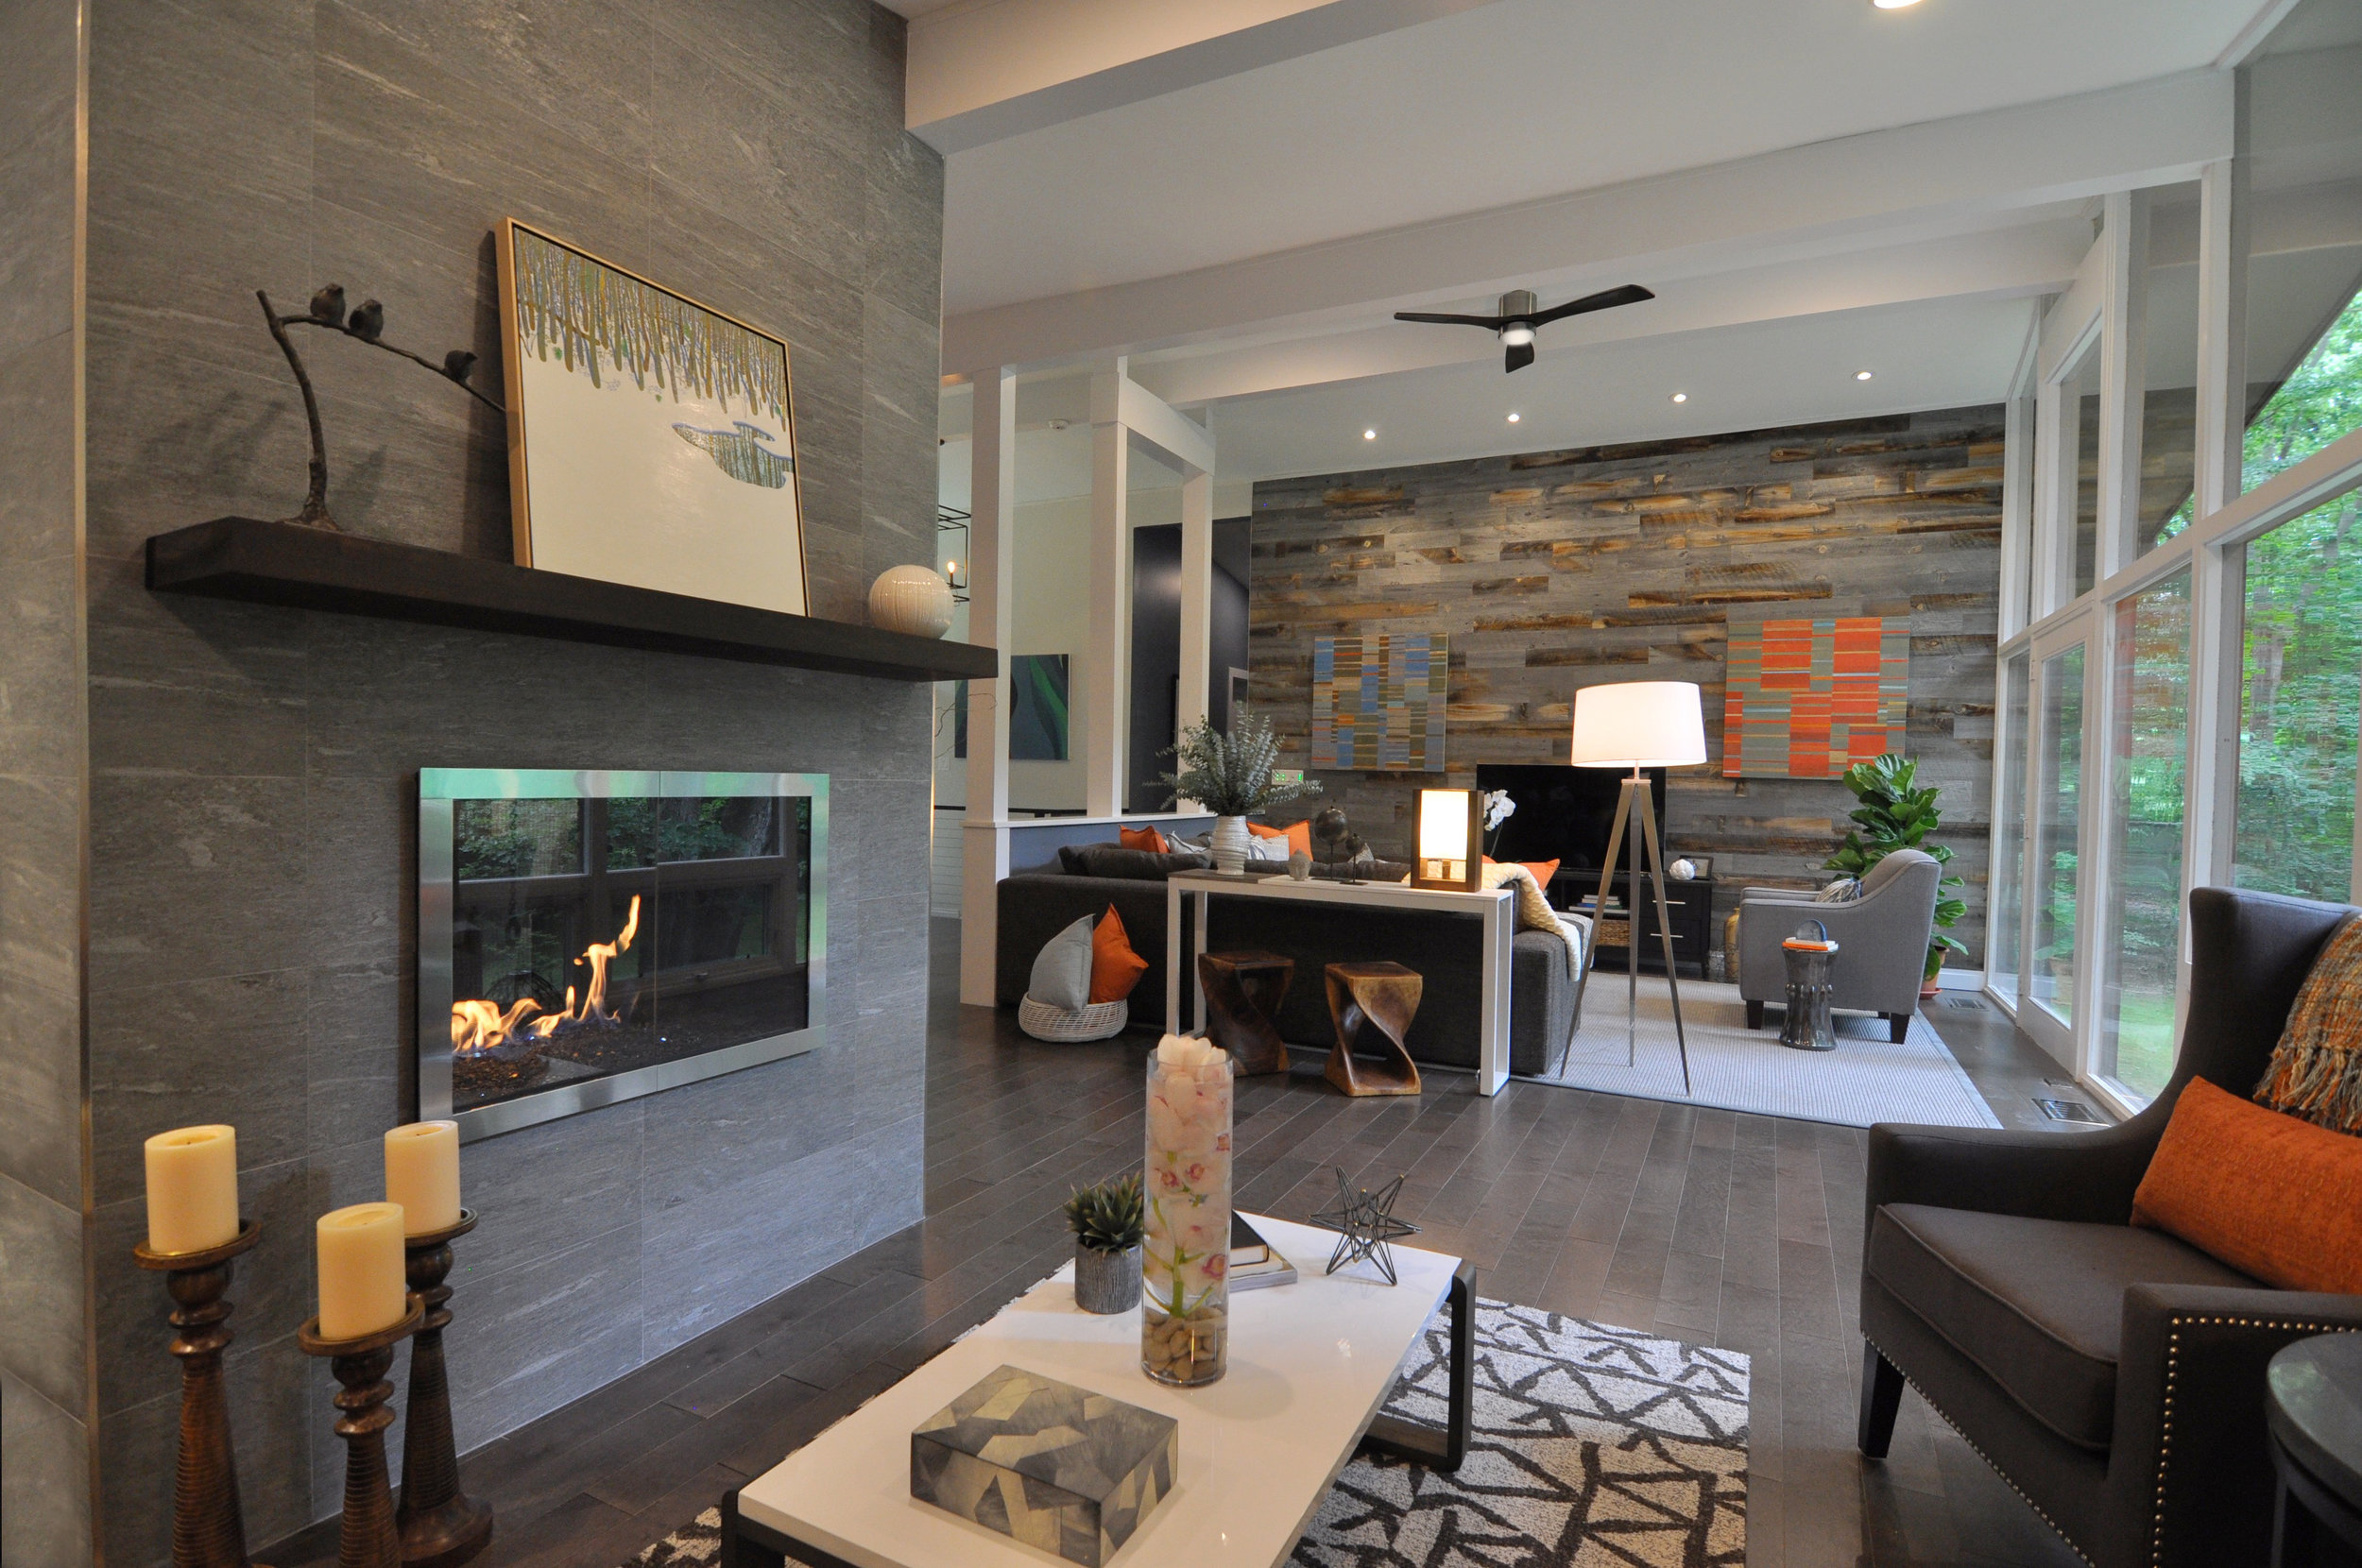 Kim A Mitchell_Design Lead_HGTV_The Property Brothers_Family Room_Tile Fireplace Facade_Gas Fireplace_2017.jpg